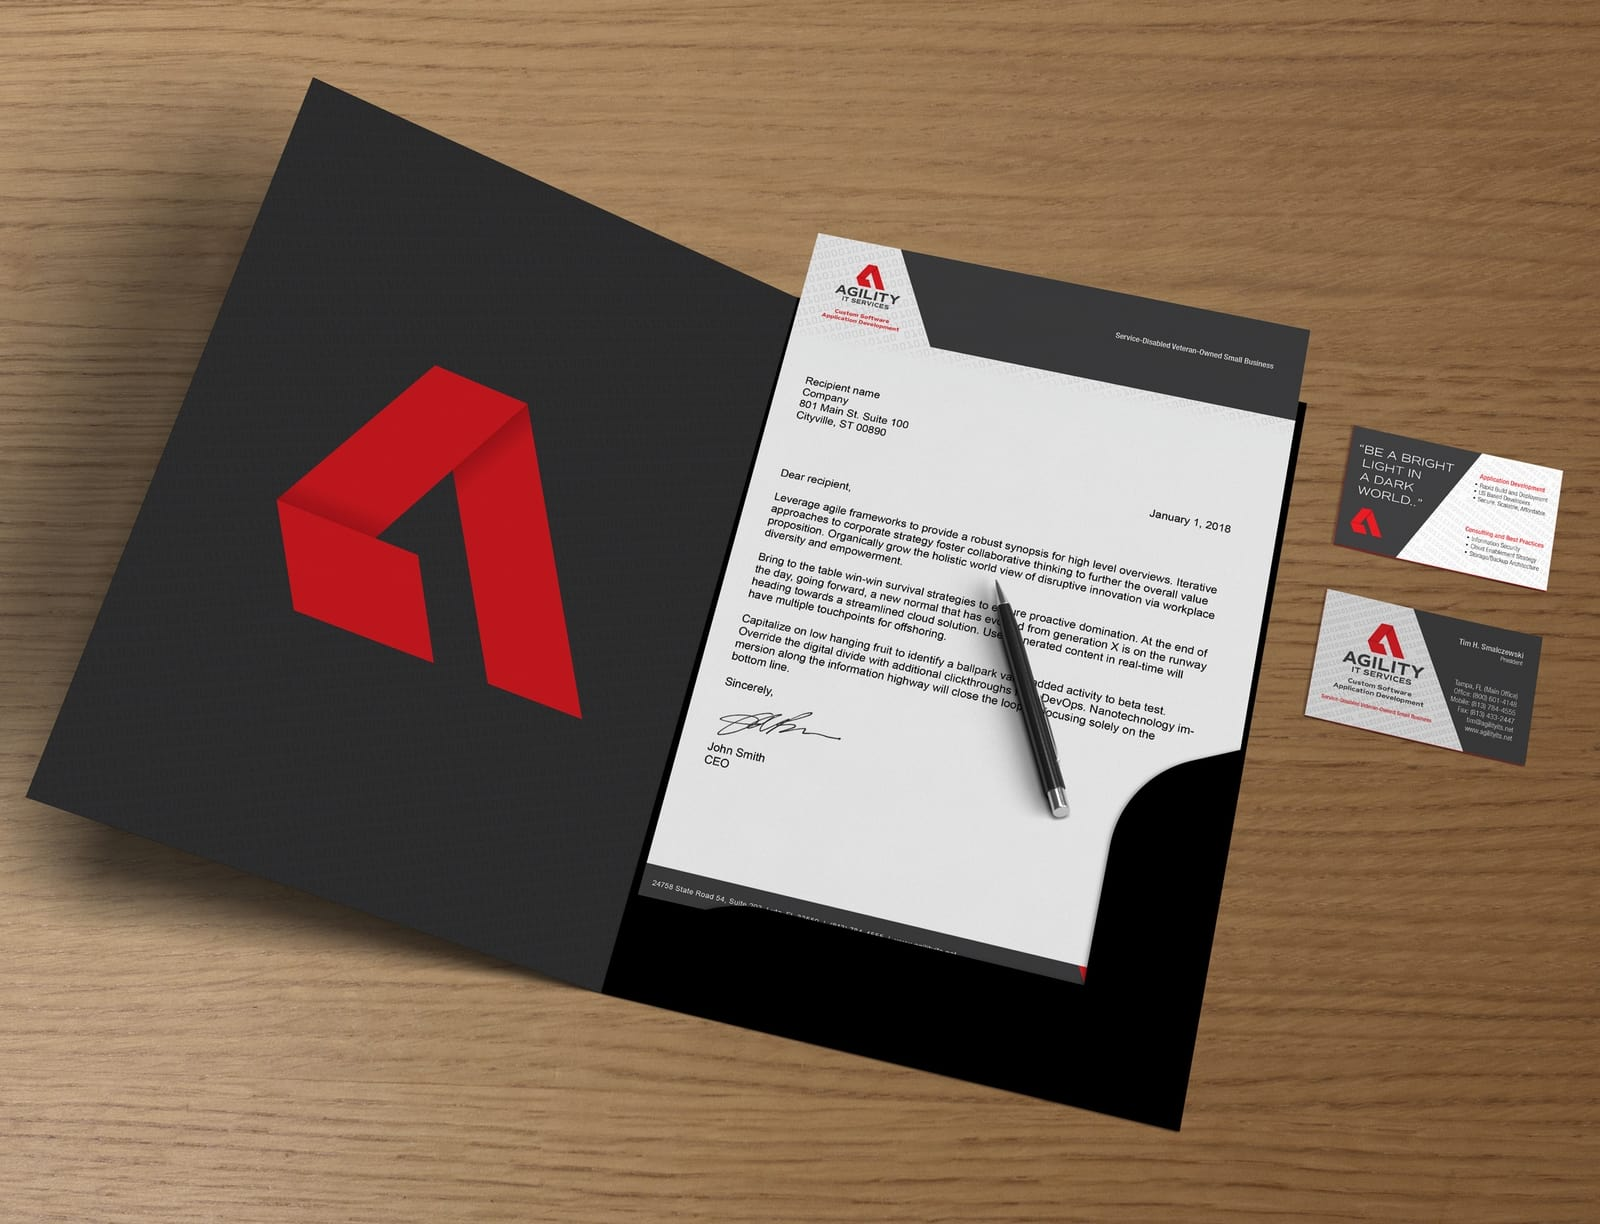 AGILITY IT Services Stationary and folder